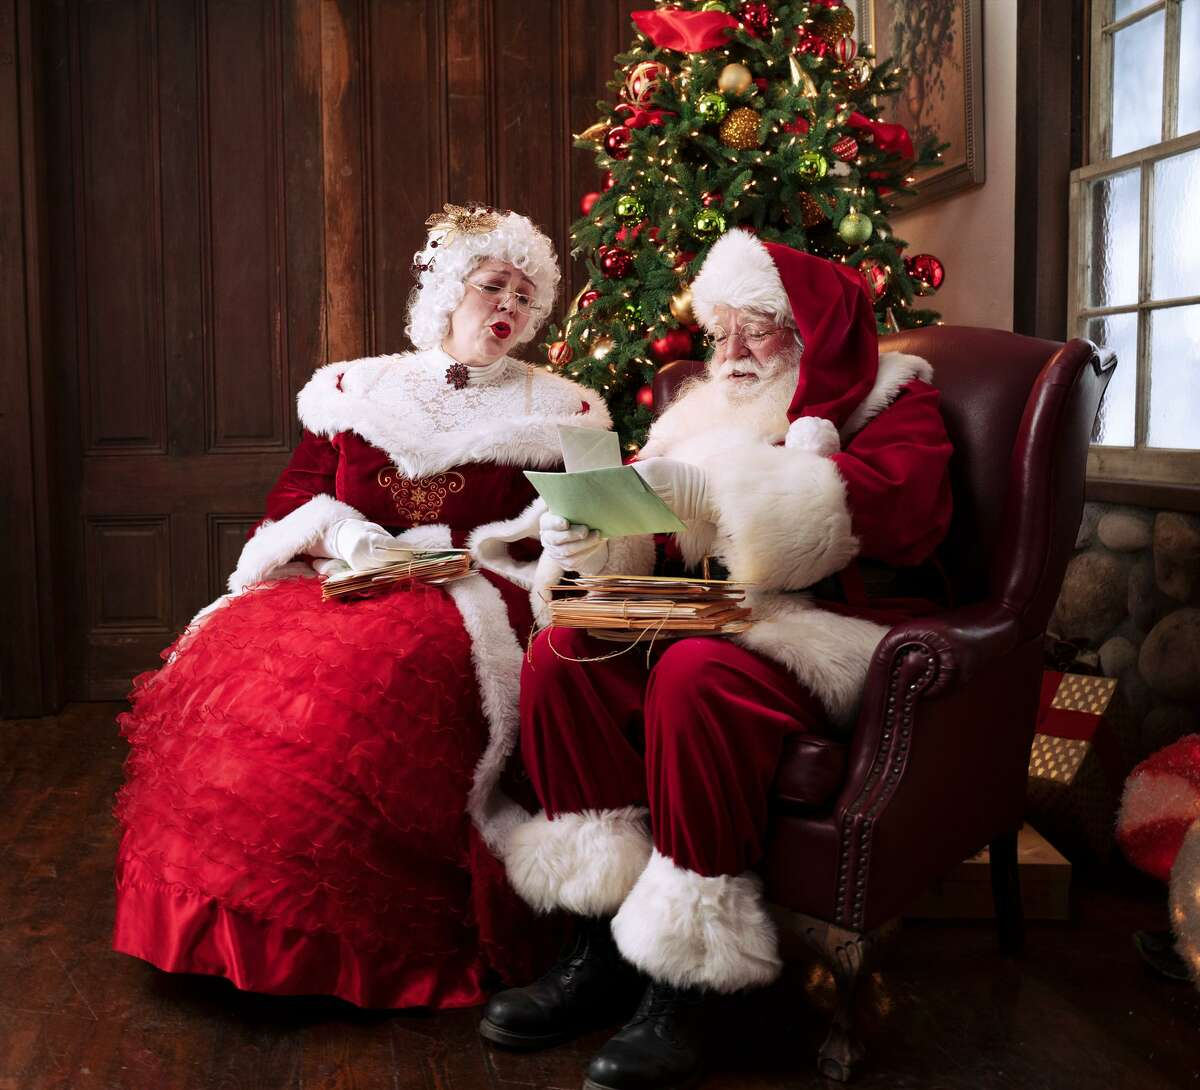 Santa and Mrs. Claus will be found in Santa - The Experience.